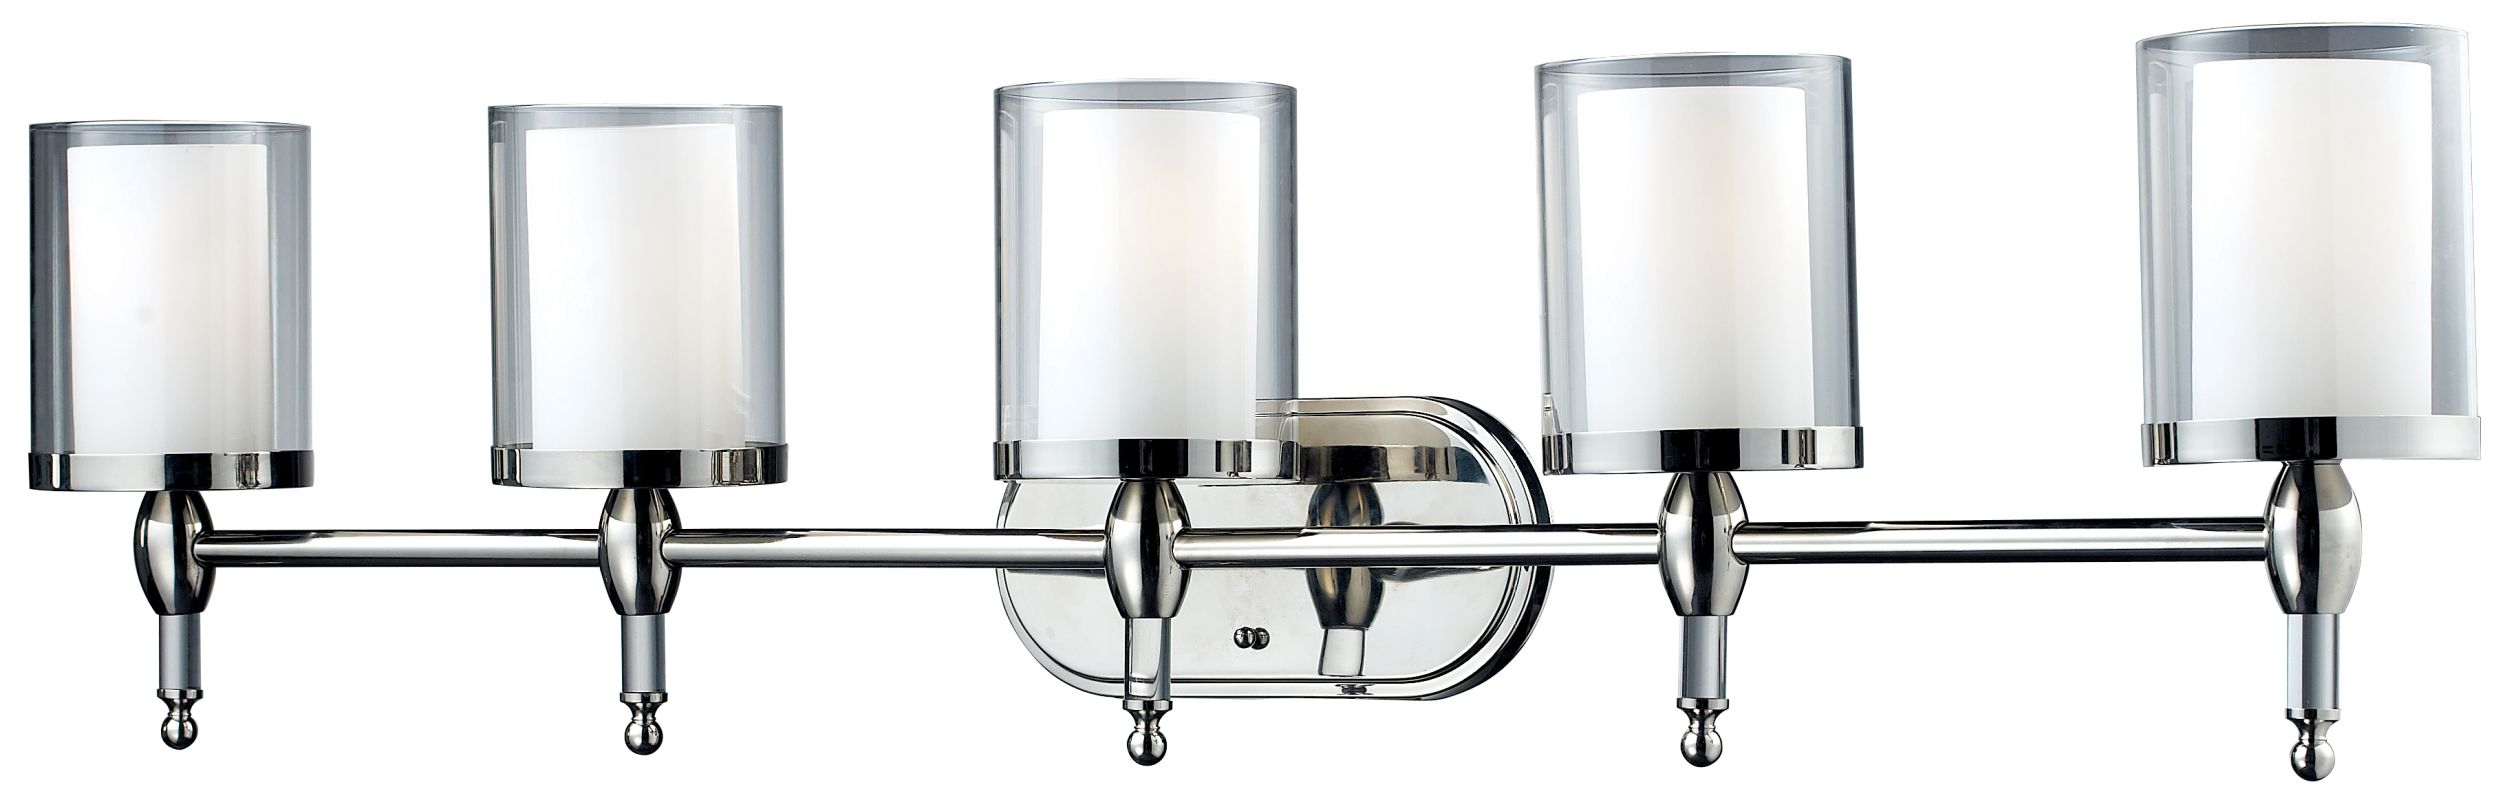 Z-Lite 1908-5V Argenta 5 Light Bathroom Vanity Light with Matte Opal Sale $498.00 ITEM: bci1826261 ID#:1908-5V UPC: 685659007190 :